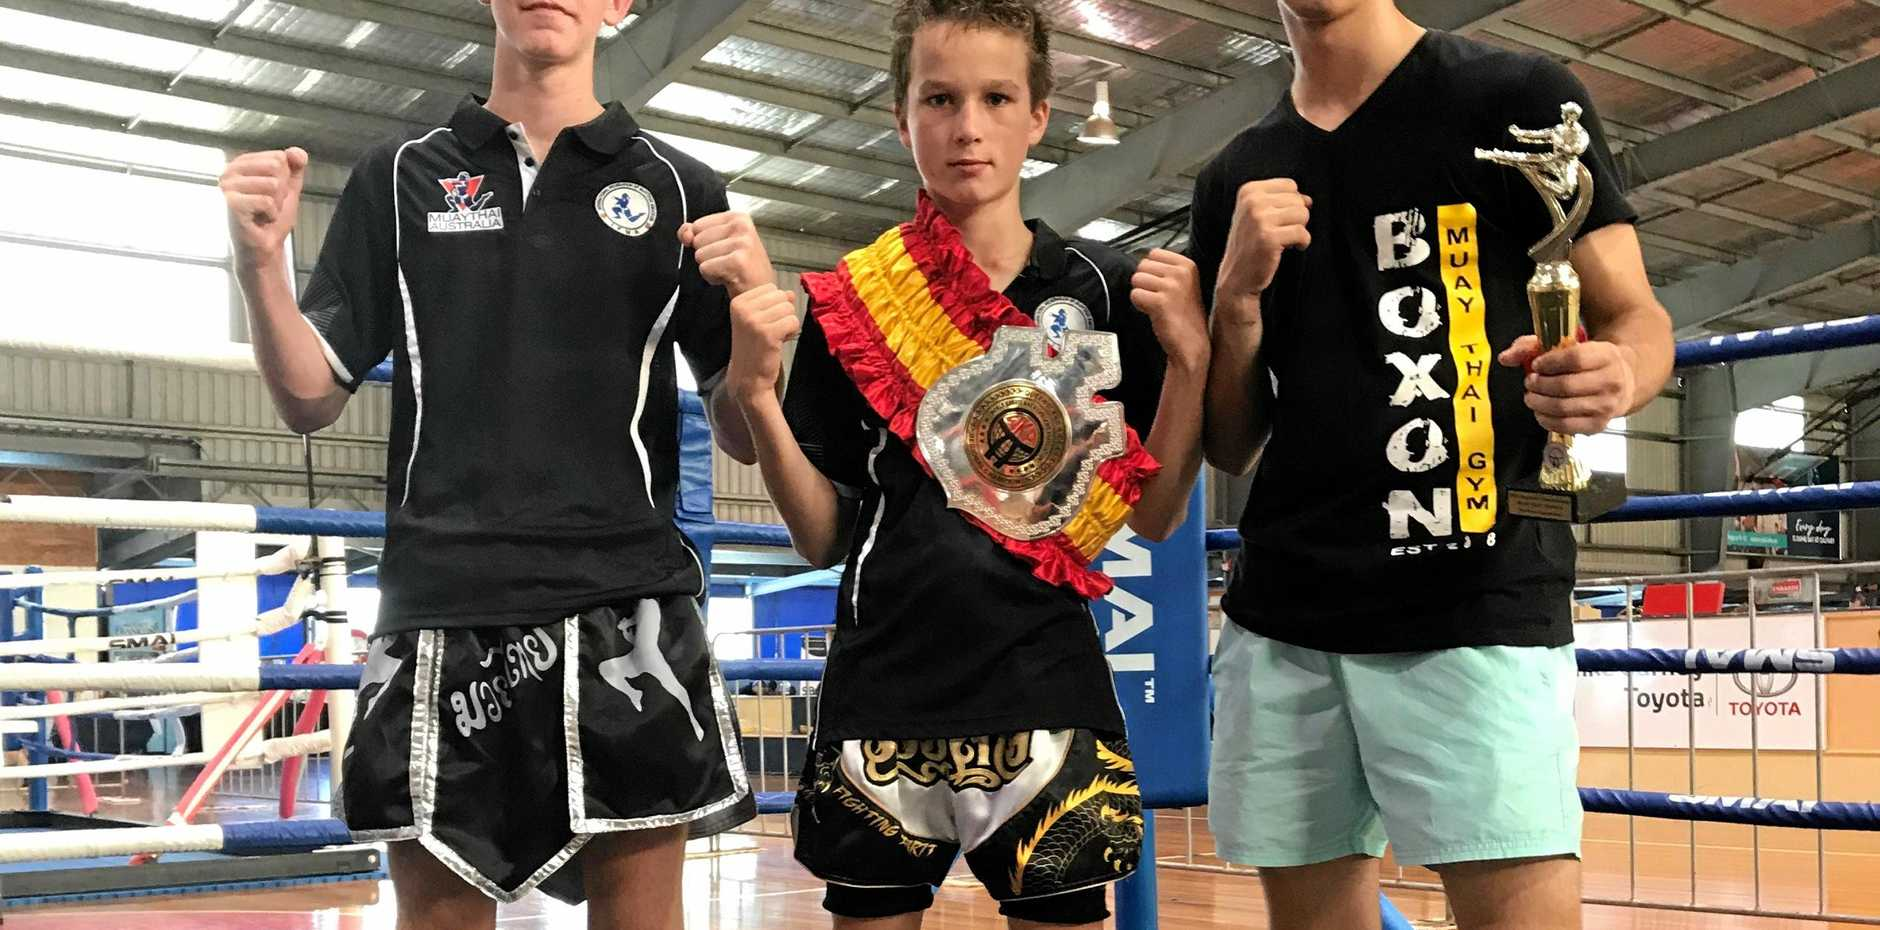 Boyce Miosge, Jye Van Polen, and Bailey Pace fought hard in Townsville earlier this month and ready for their next fights.